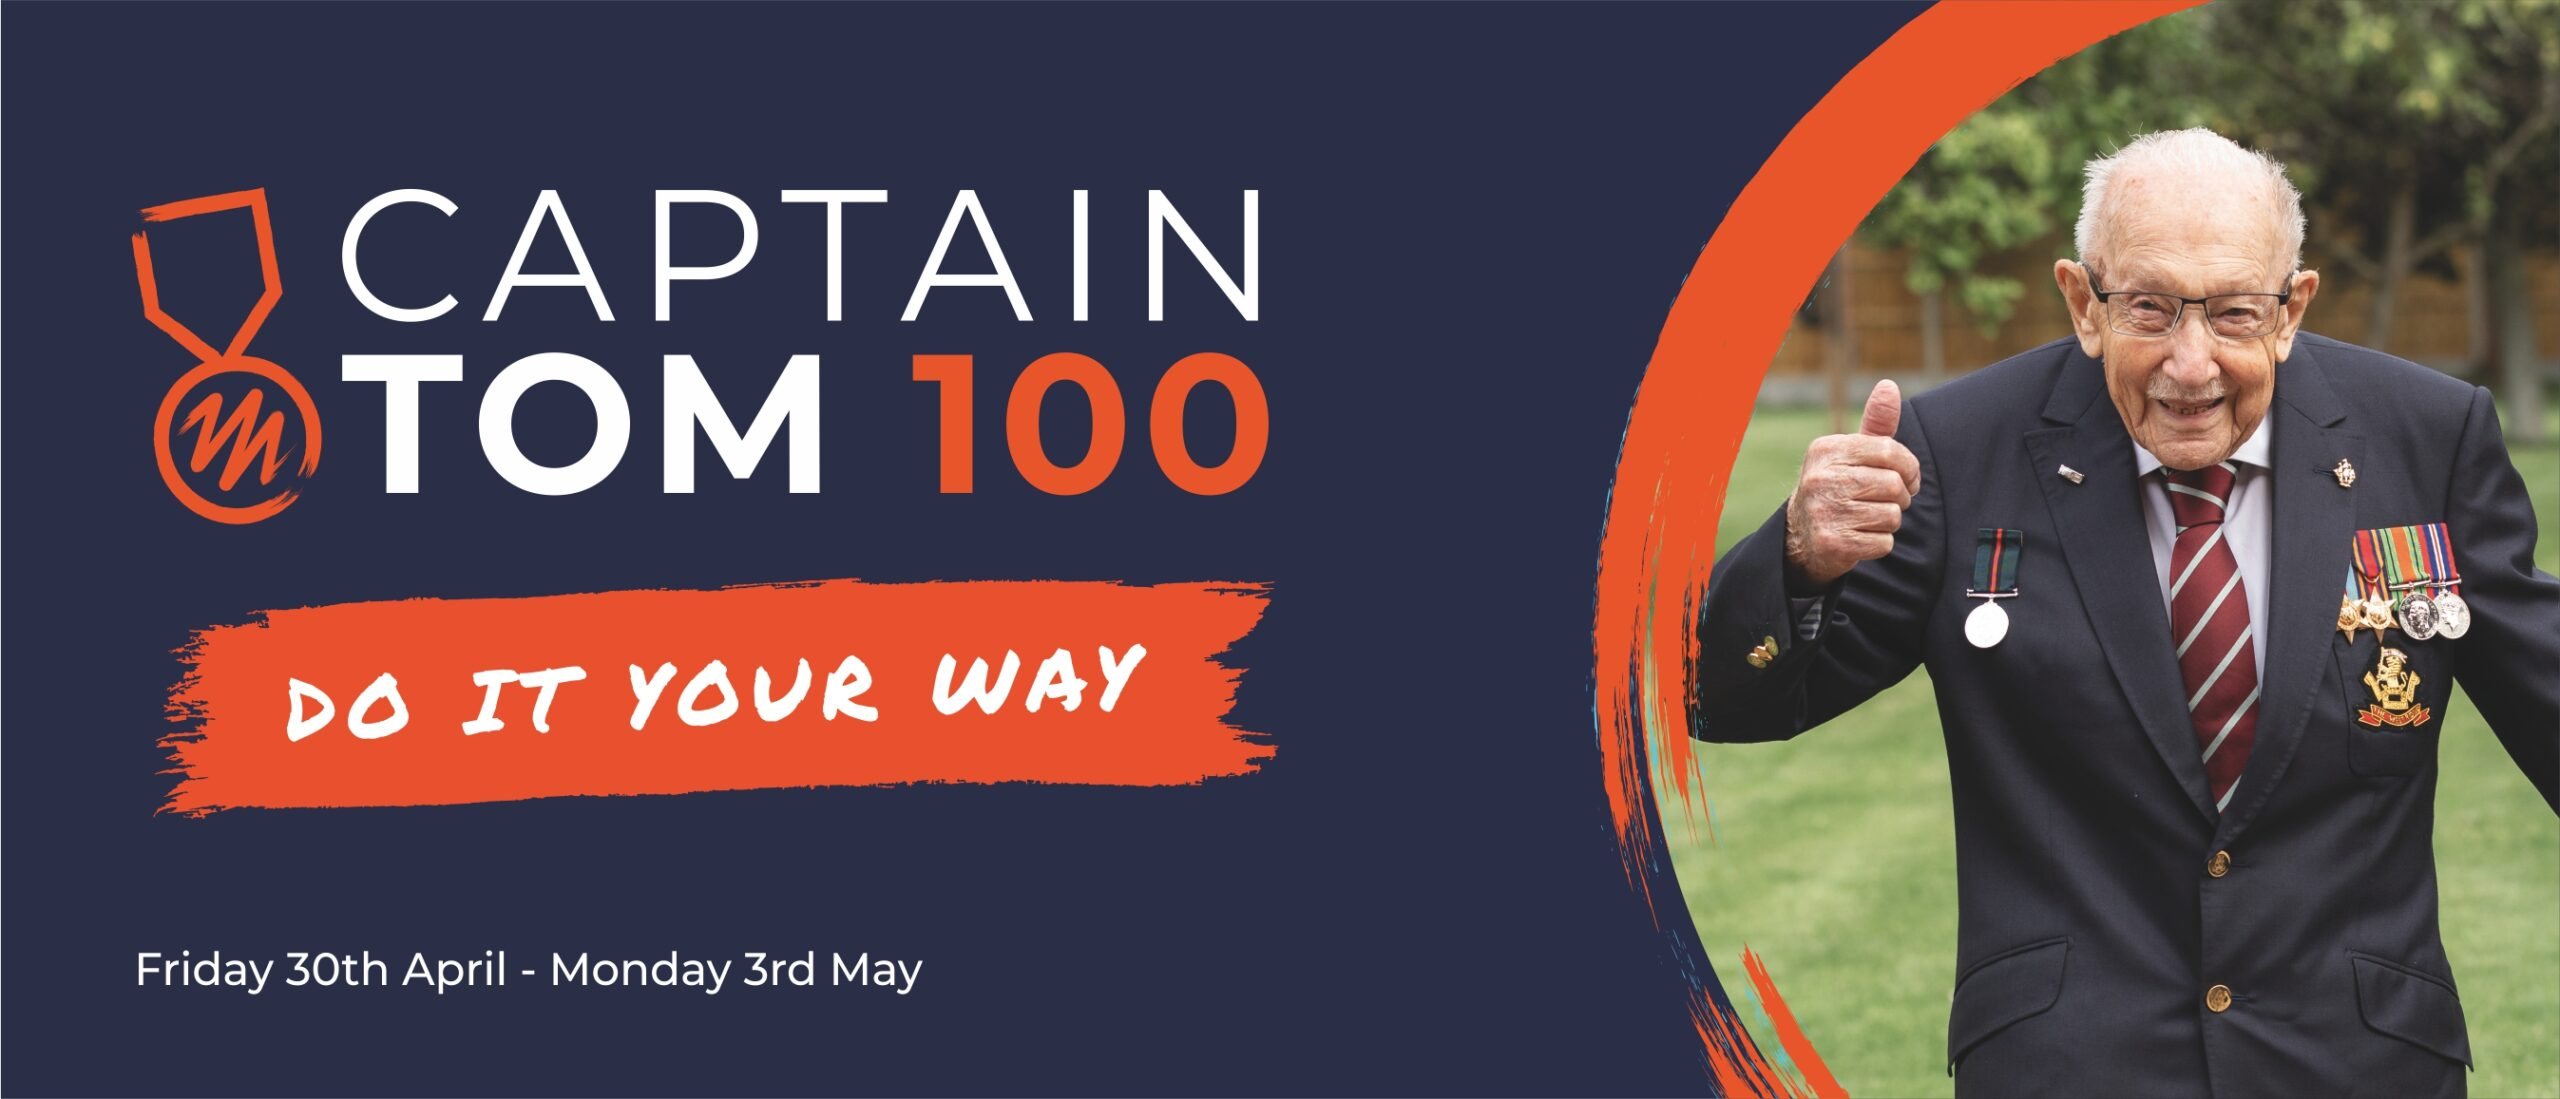 Captain Tom 100 - do it your way, Friday 30 April to Monday 3 May